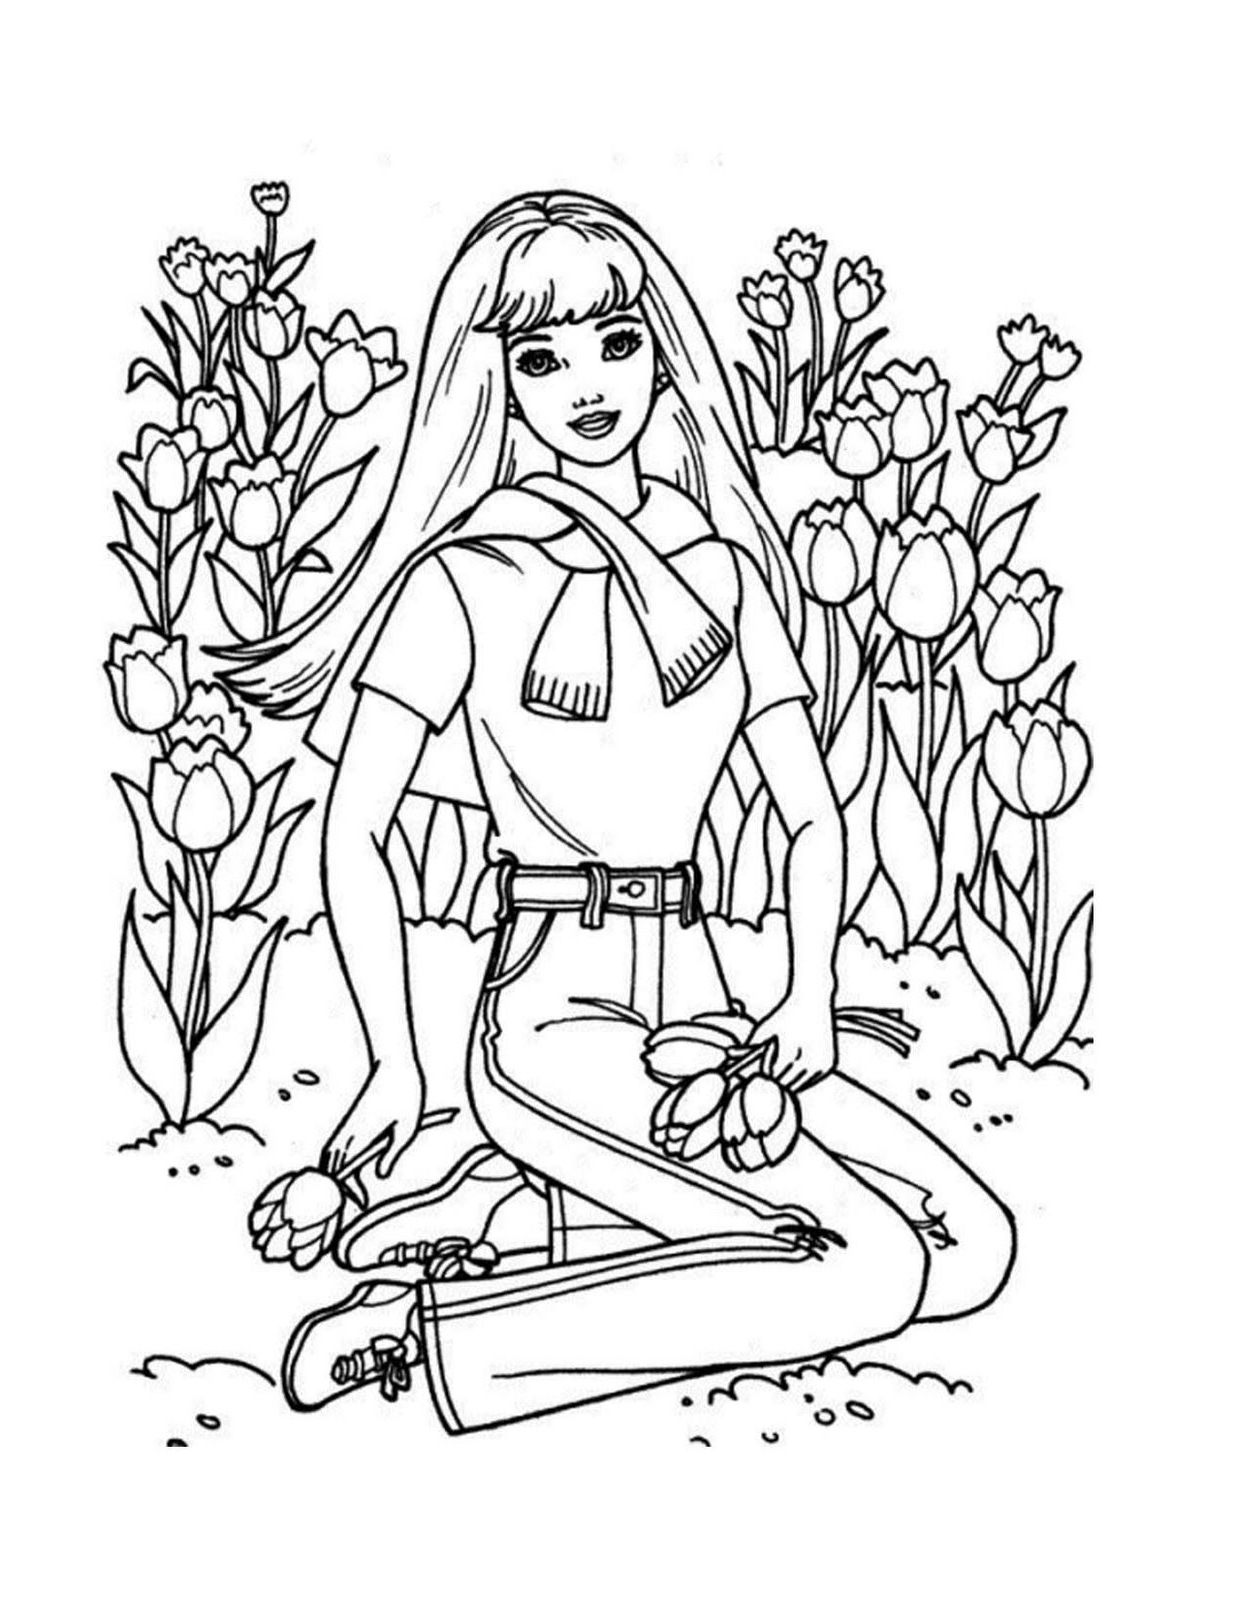 Clean image intended for printable barbie coloring pages